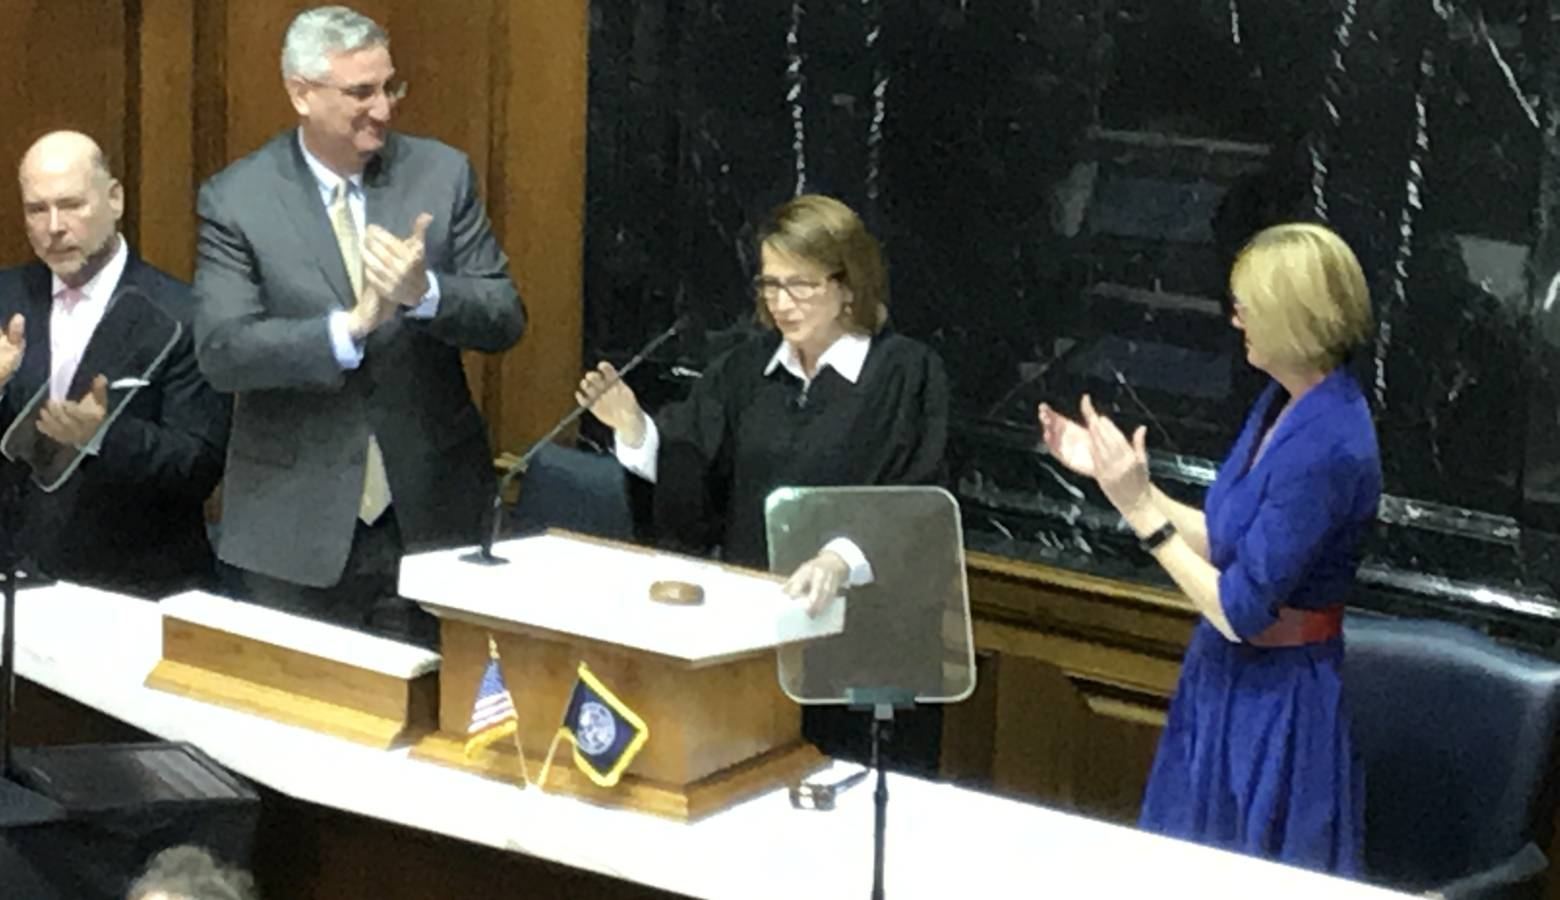 Gov. Eric Holcomb (left) and Lt. Gov. Suzanne Crouch (right) applaud Chief Justice Loretta Rush as she completes her State of the Judiciary address. (Brandon Smith/IPB News)